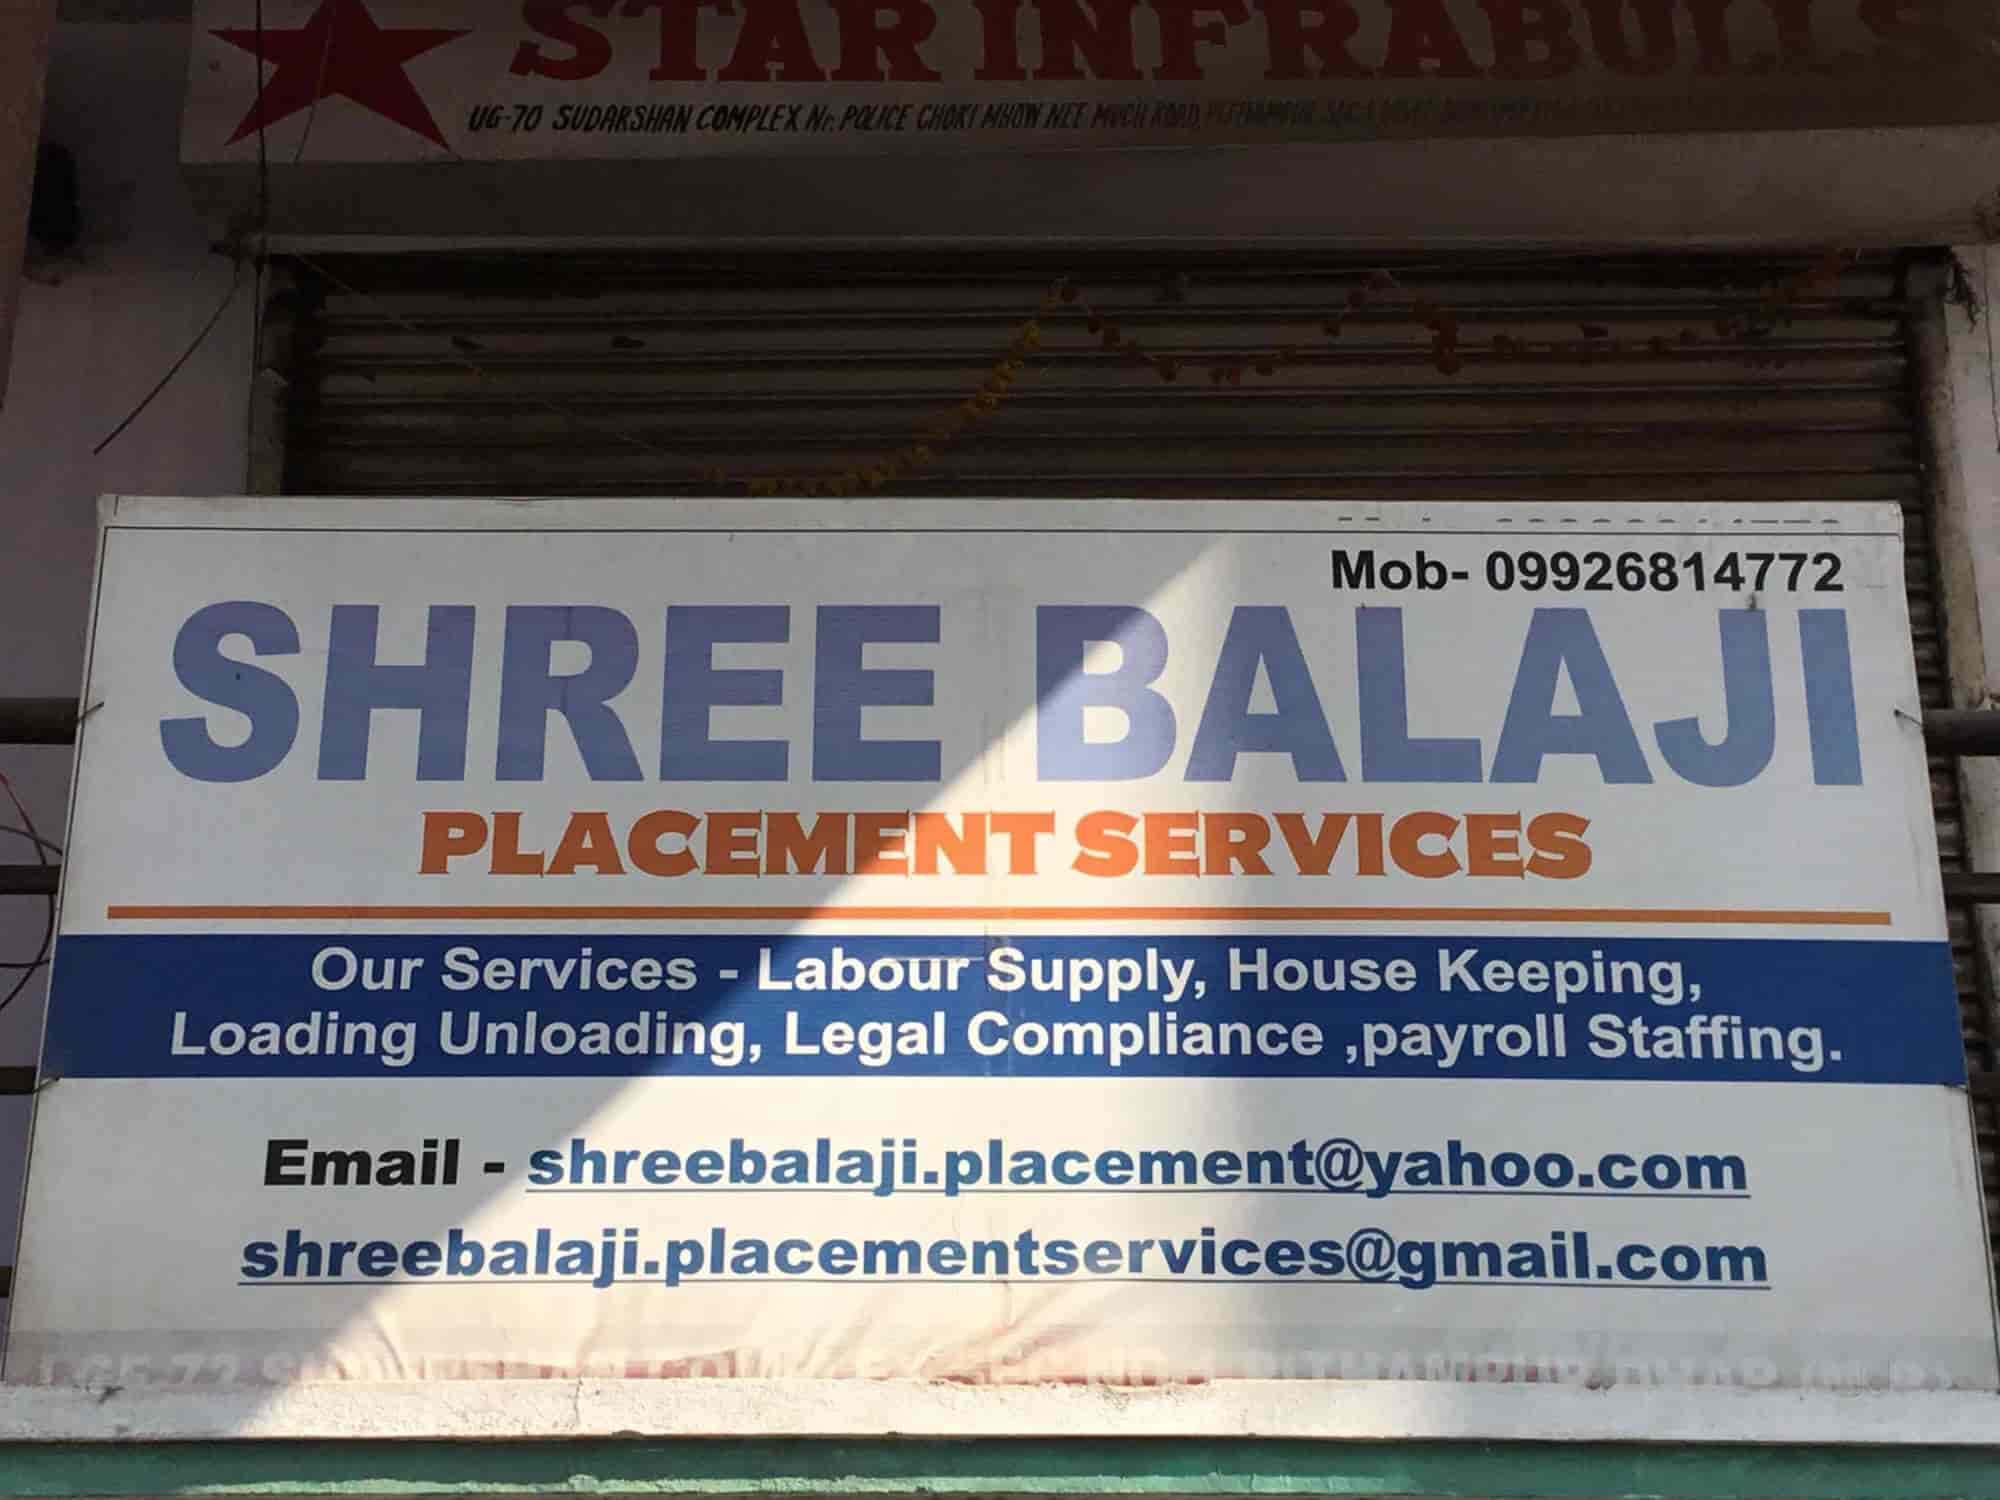 Shree Balaji Placement Services & Payroll Staffing Services